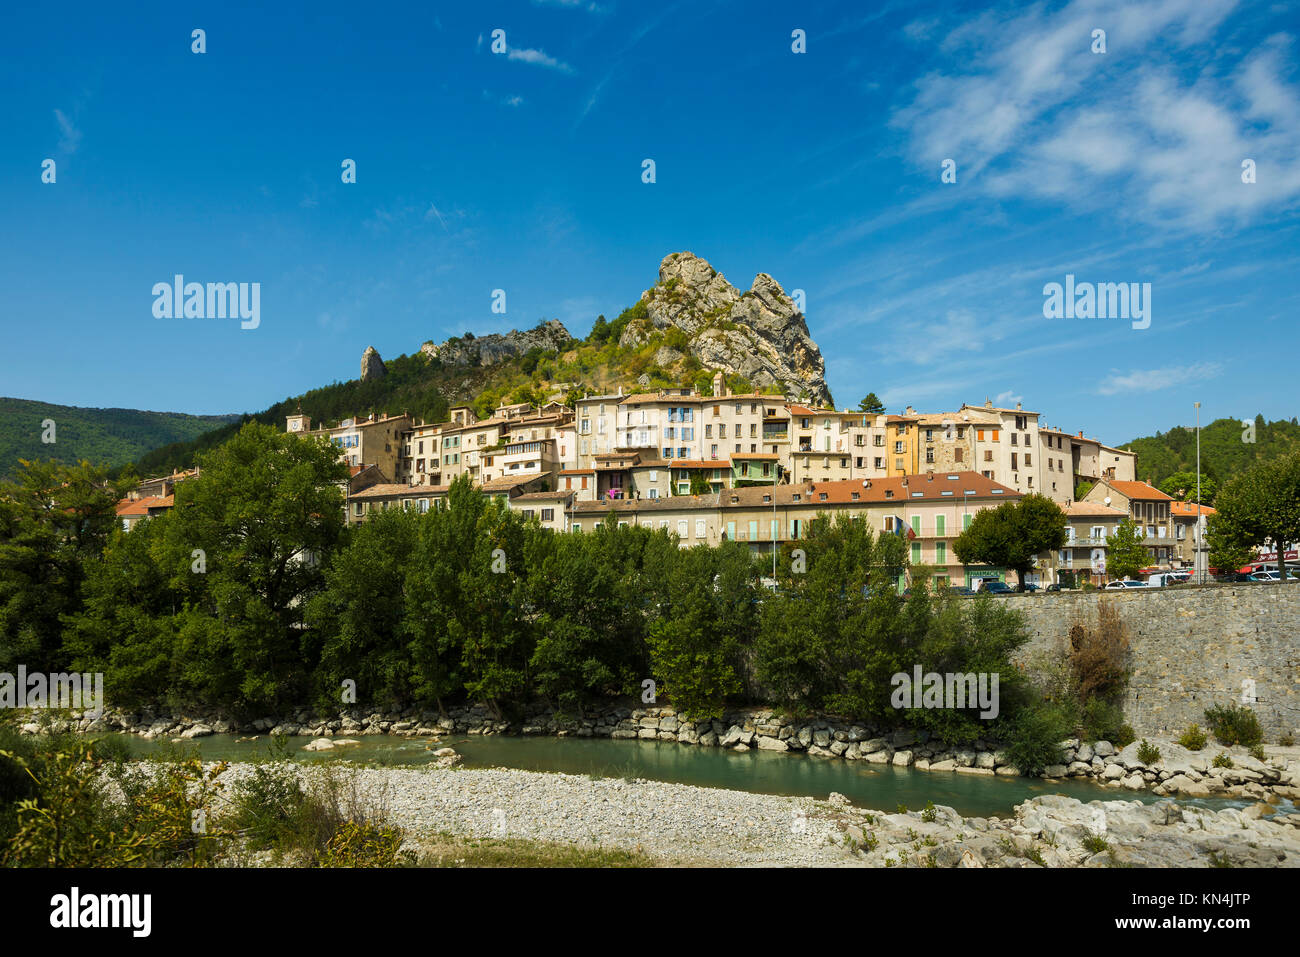 provence alpes cote d azur stock photos provence alpes cote d azur stock images alamy. Black Bedroom Furniture Sets. Home Design Ideas